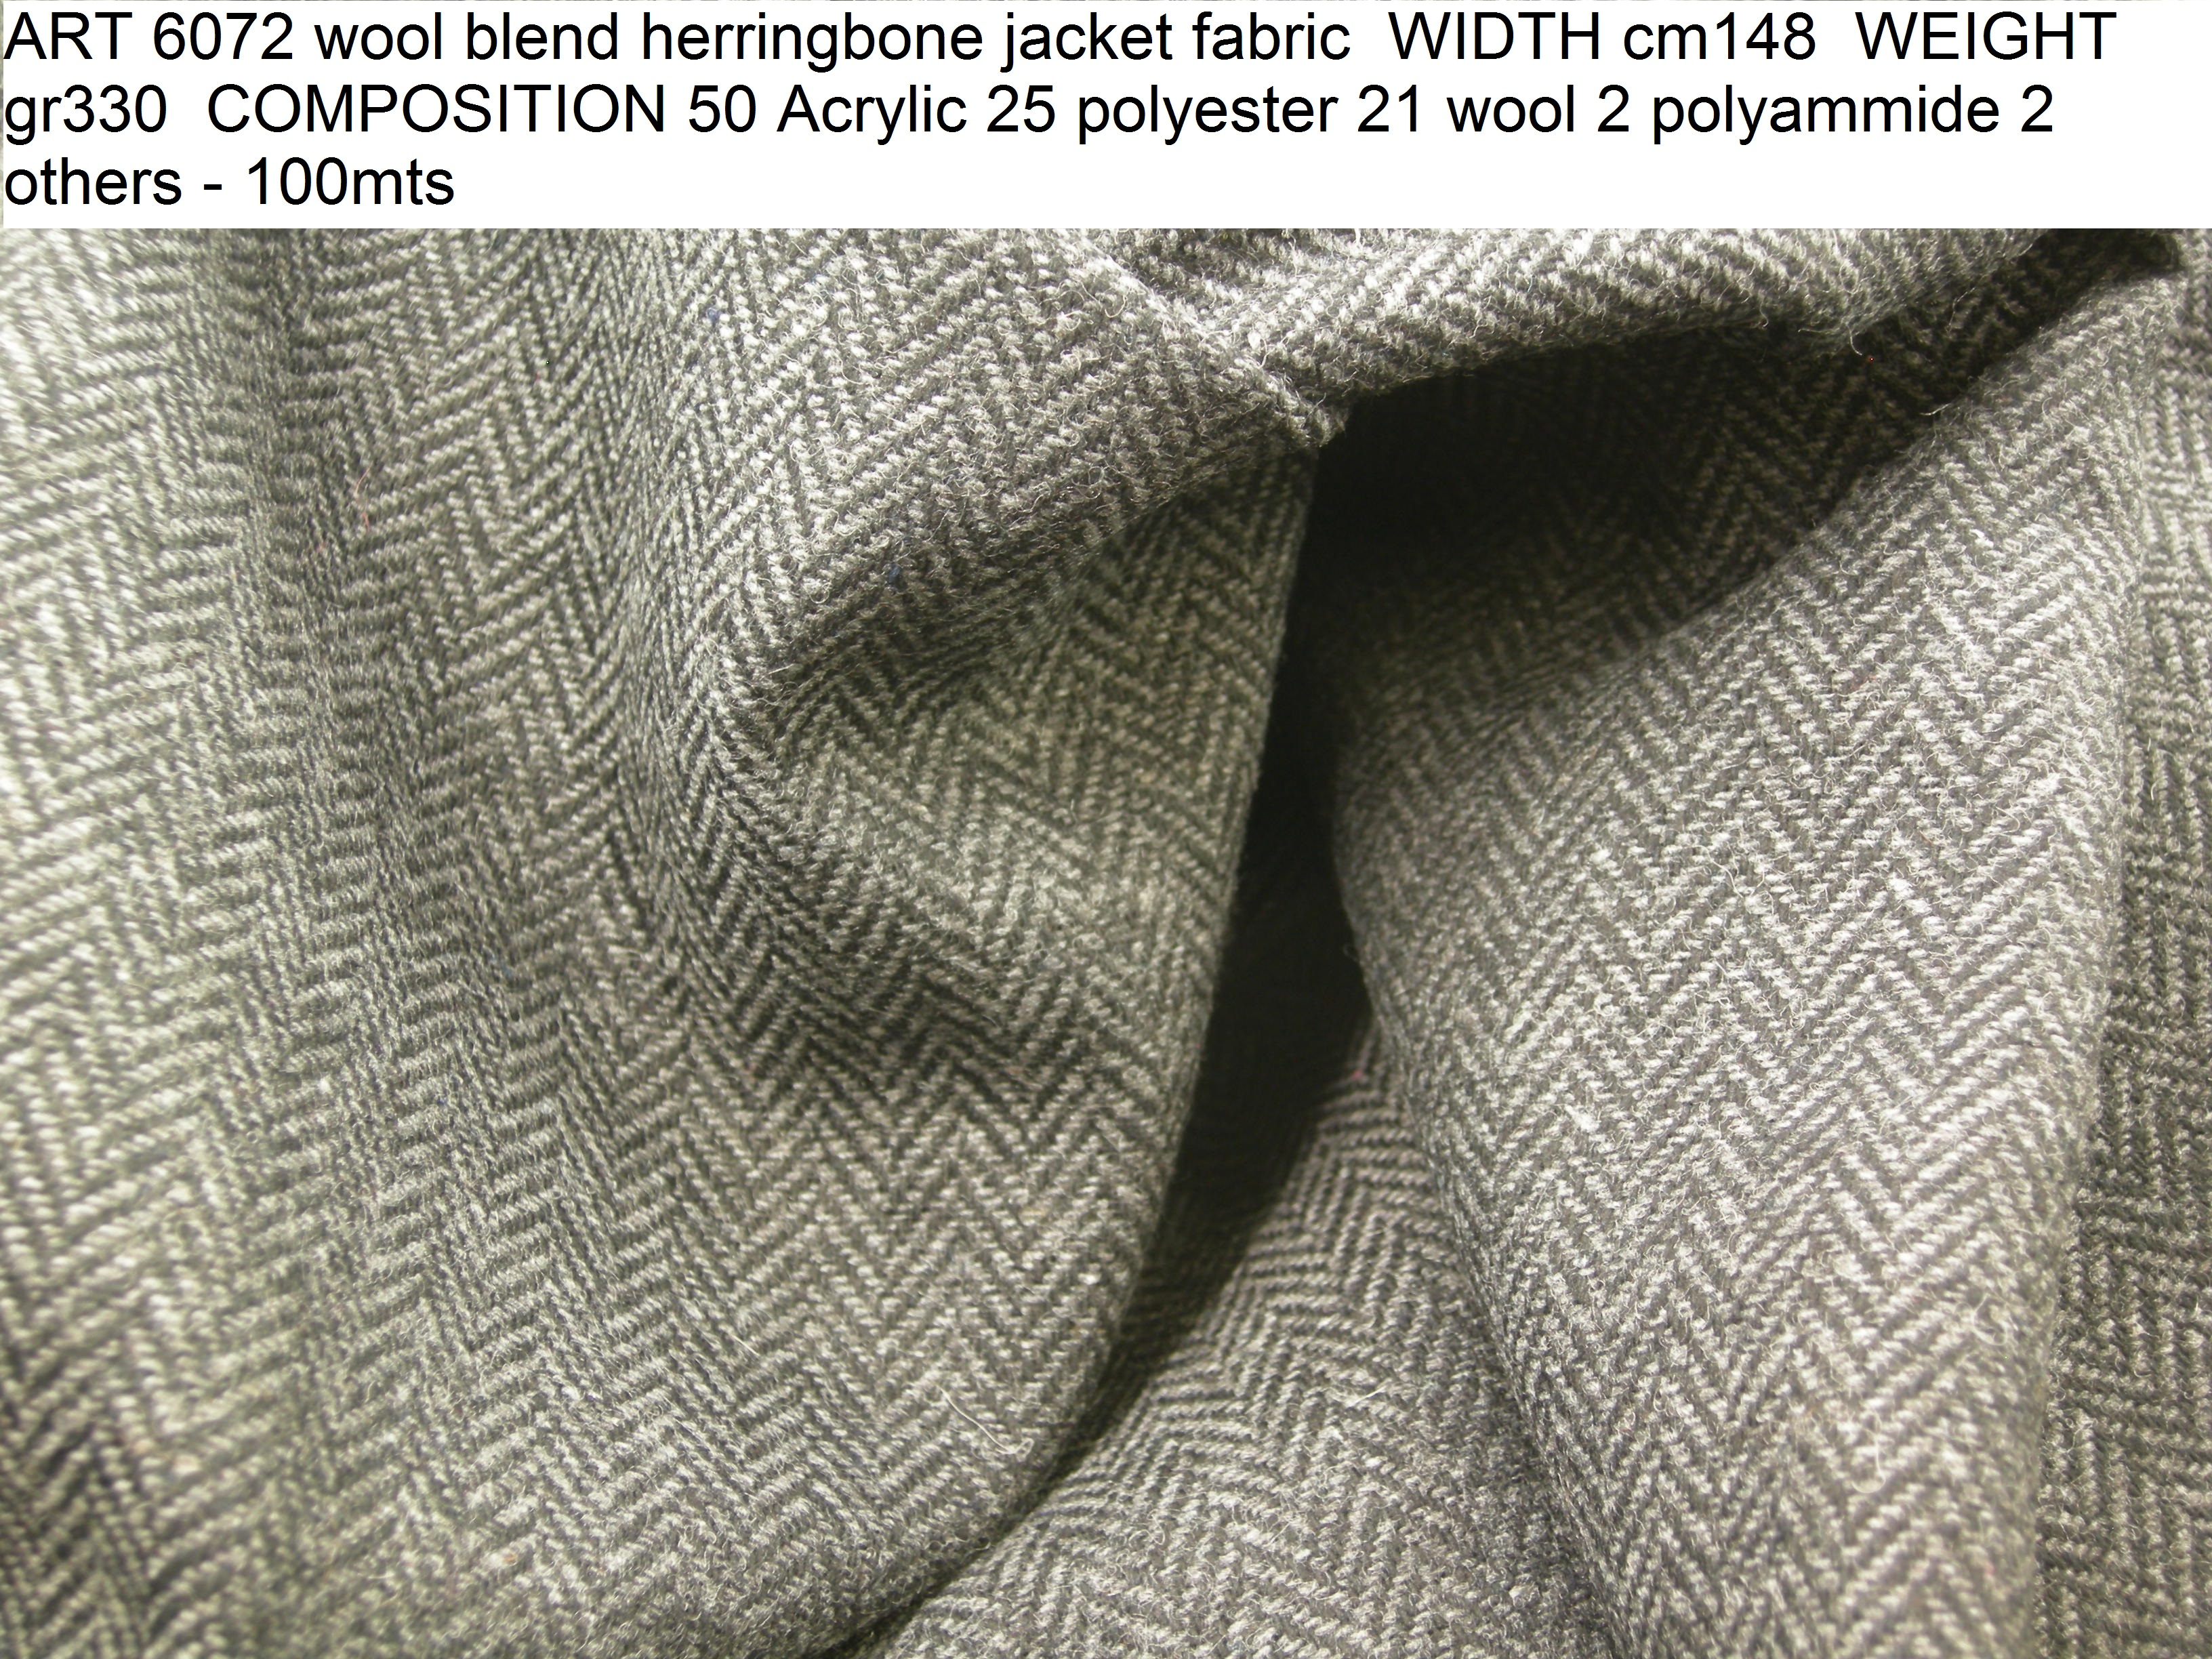 ART 6072 wool blend herringbone jacket fabric WIDTH cm148 WEIGHT gr330 COMPOSITION 50 Acrylic 25 polyester 21 wool 2 polyammide 2 others - 100mts